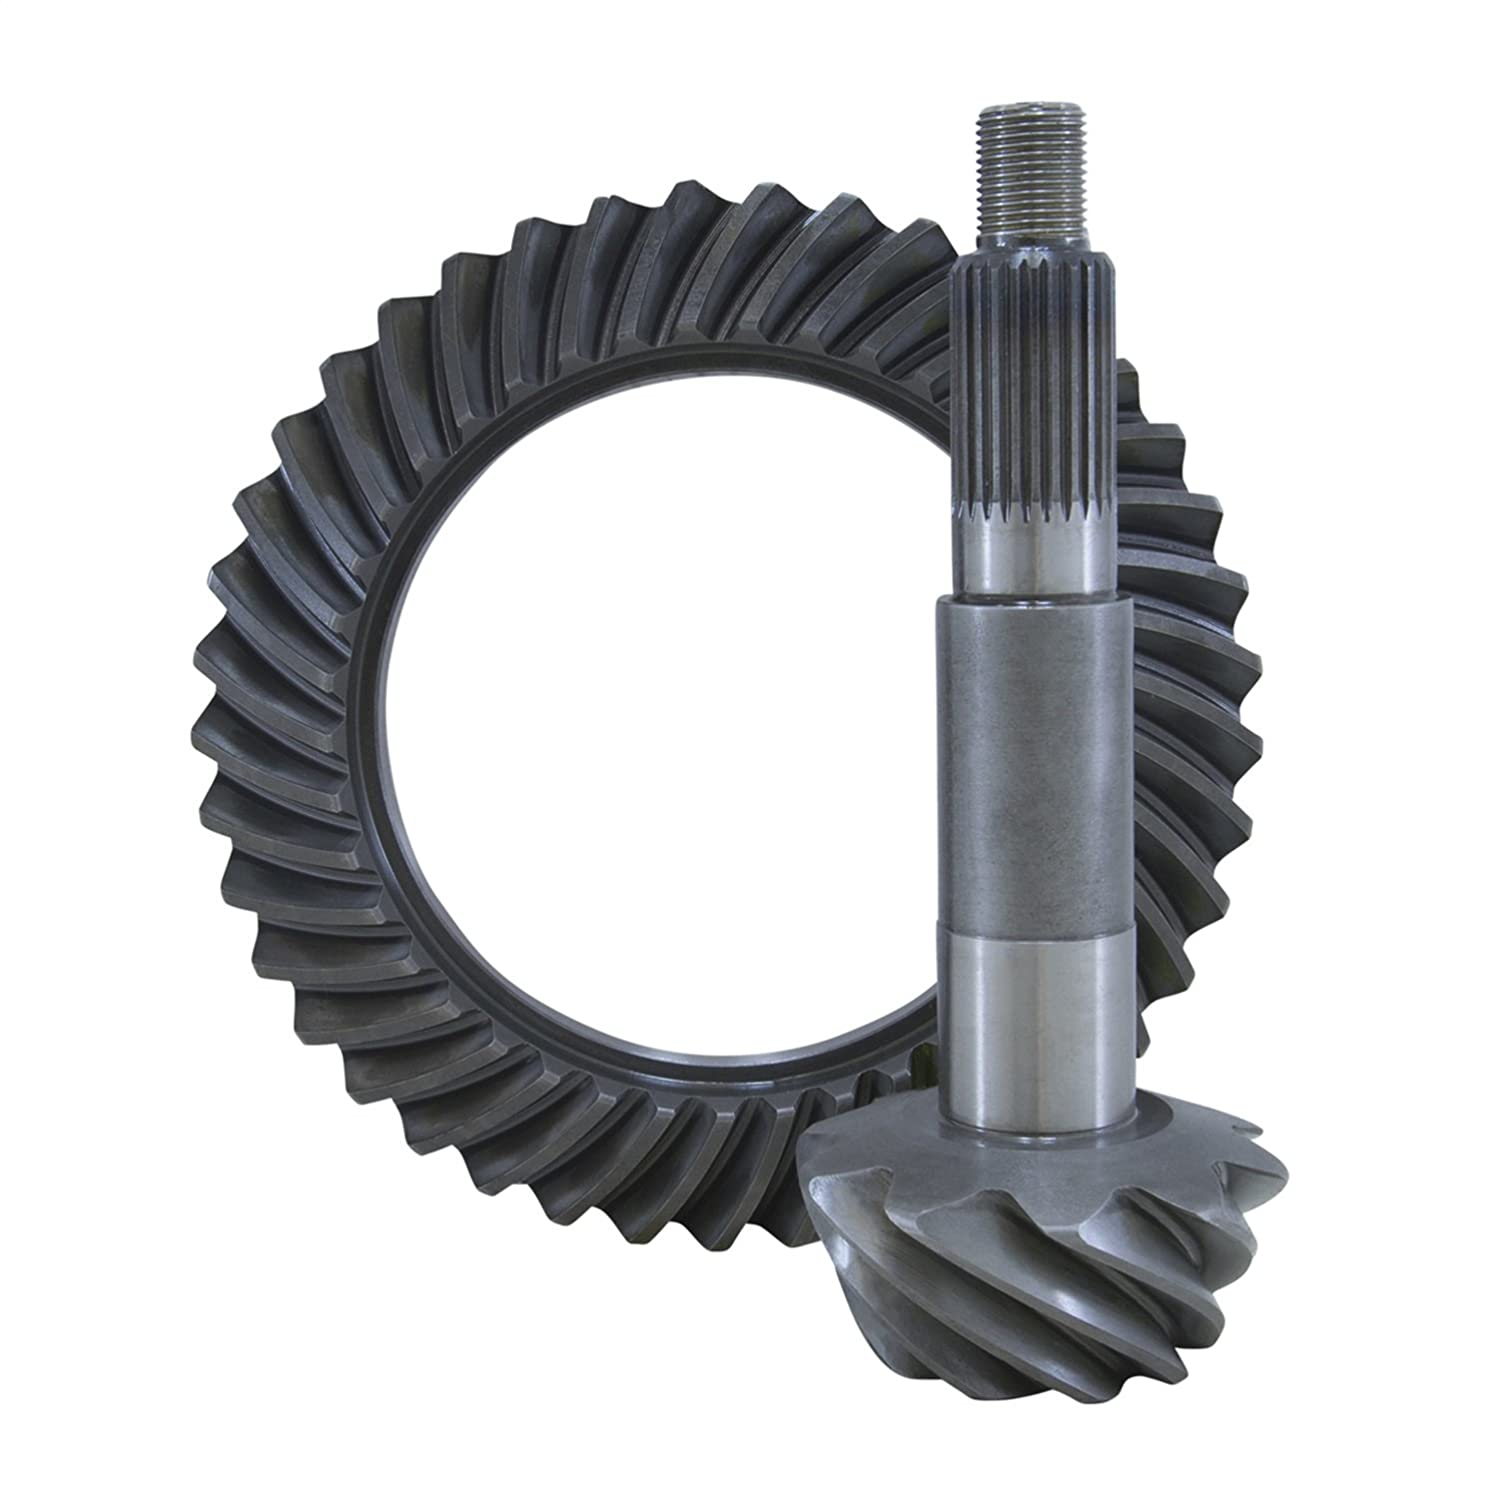 Yukon ZGD44-488T Ring and Pinion Gear Set for Dana 44 Axle